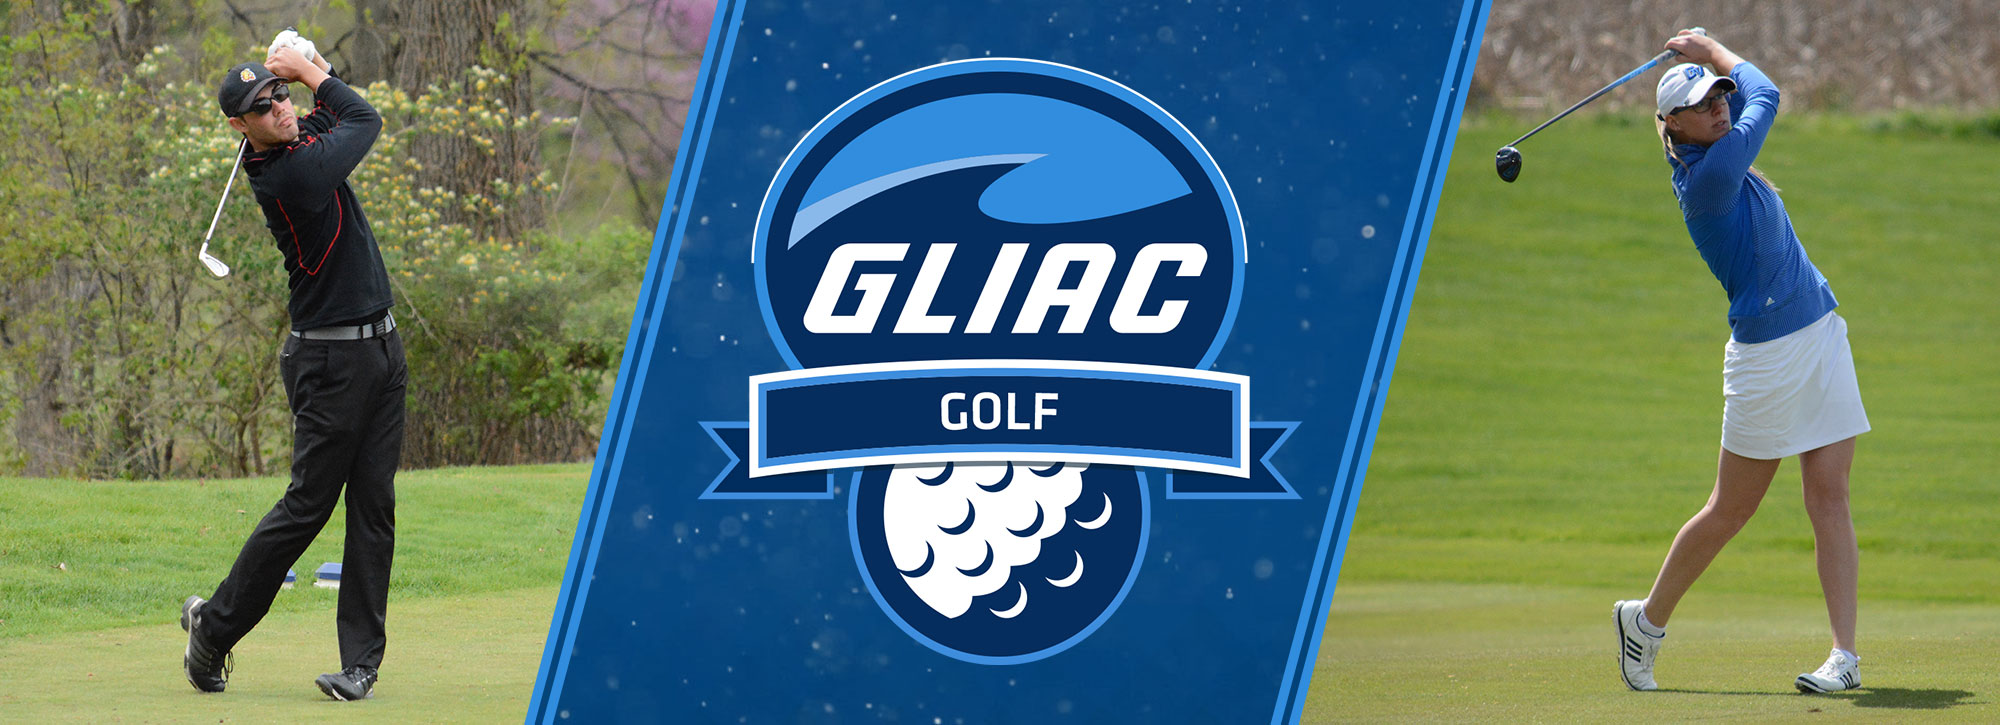 Ferris State's Weller, Grand Valley State's Chipman Selected GLIAC Golfers of the Week